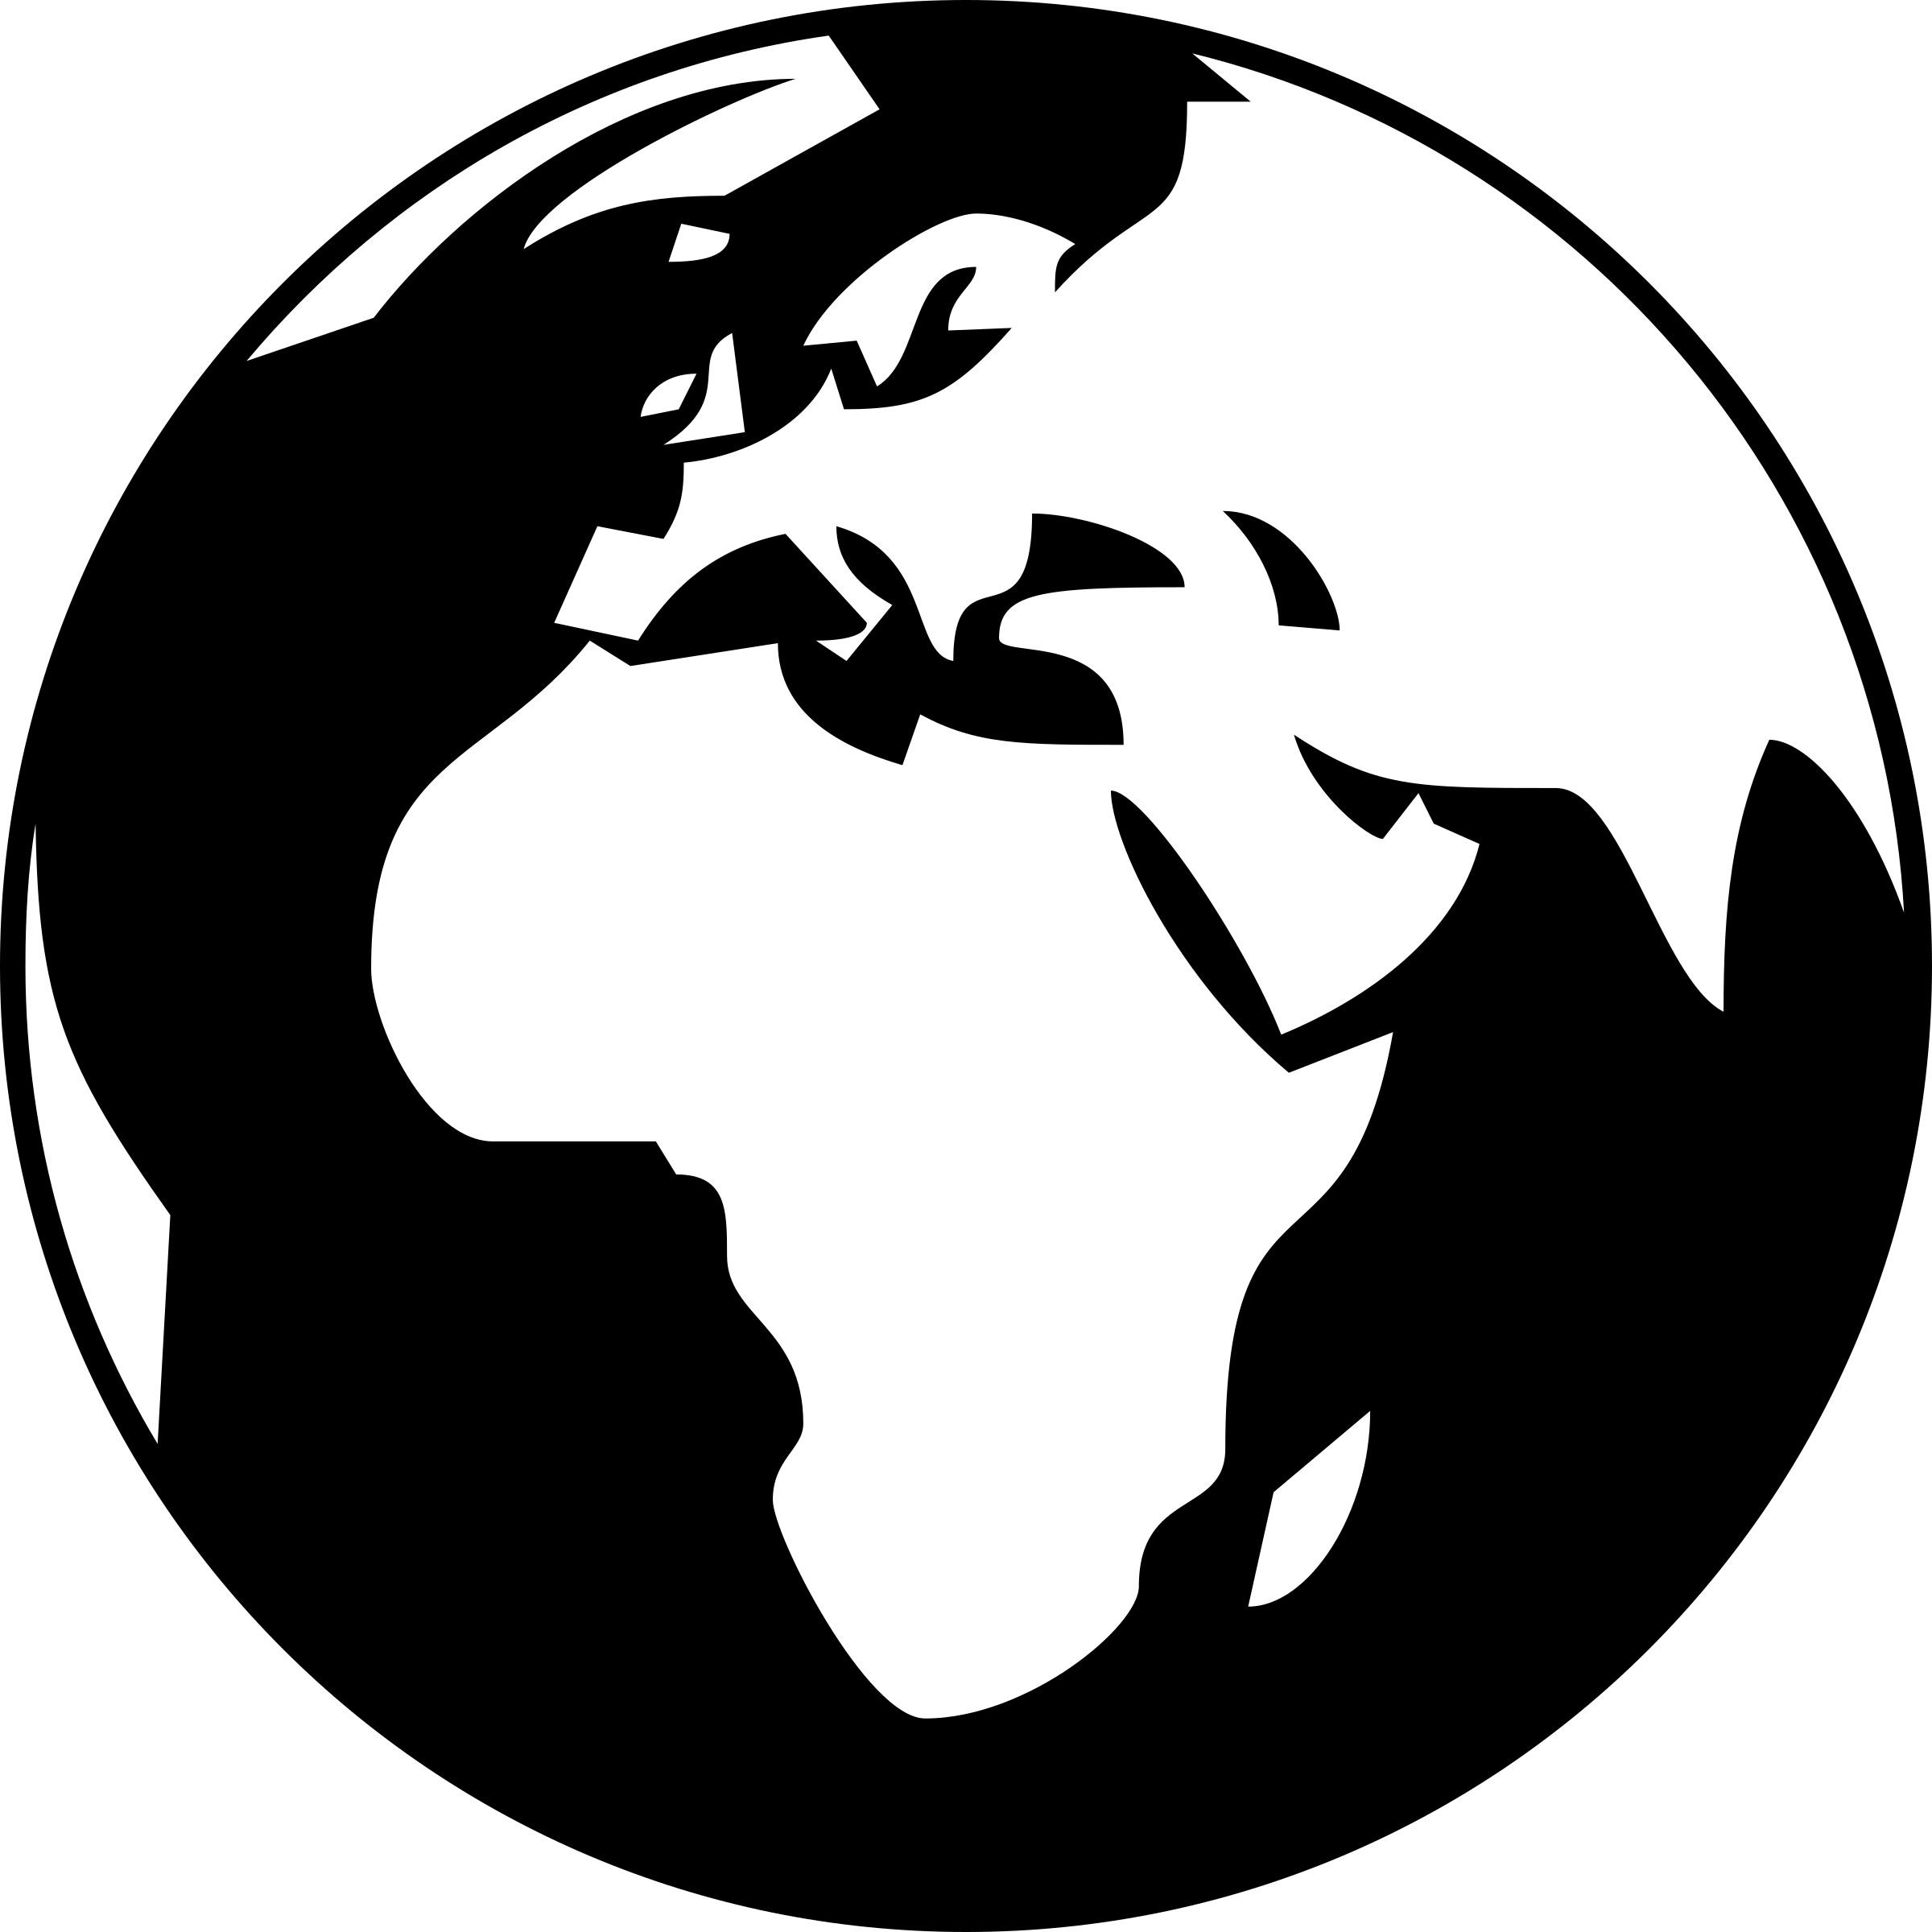 globe png black and white